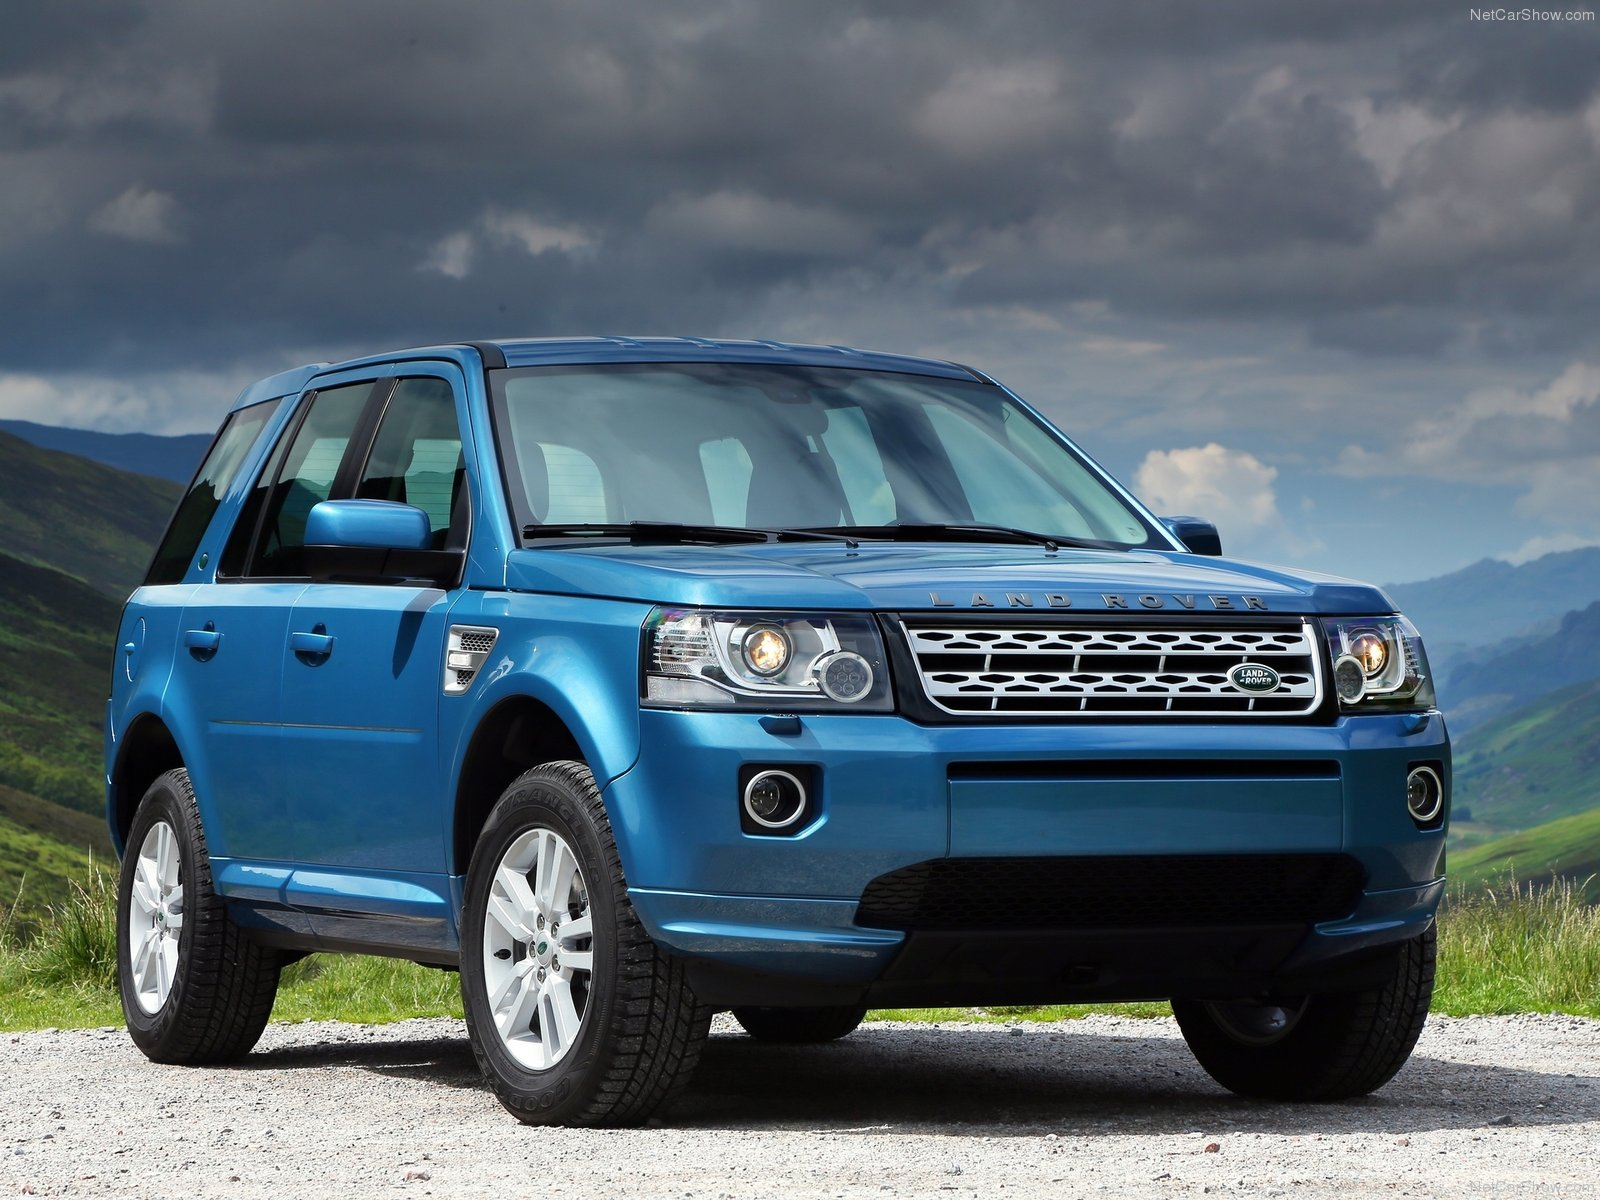 HD Range Rover Wallpapers Range Rover Sport Background Images For 1600x1200